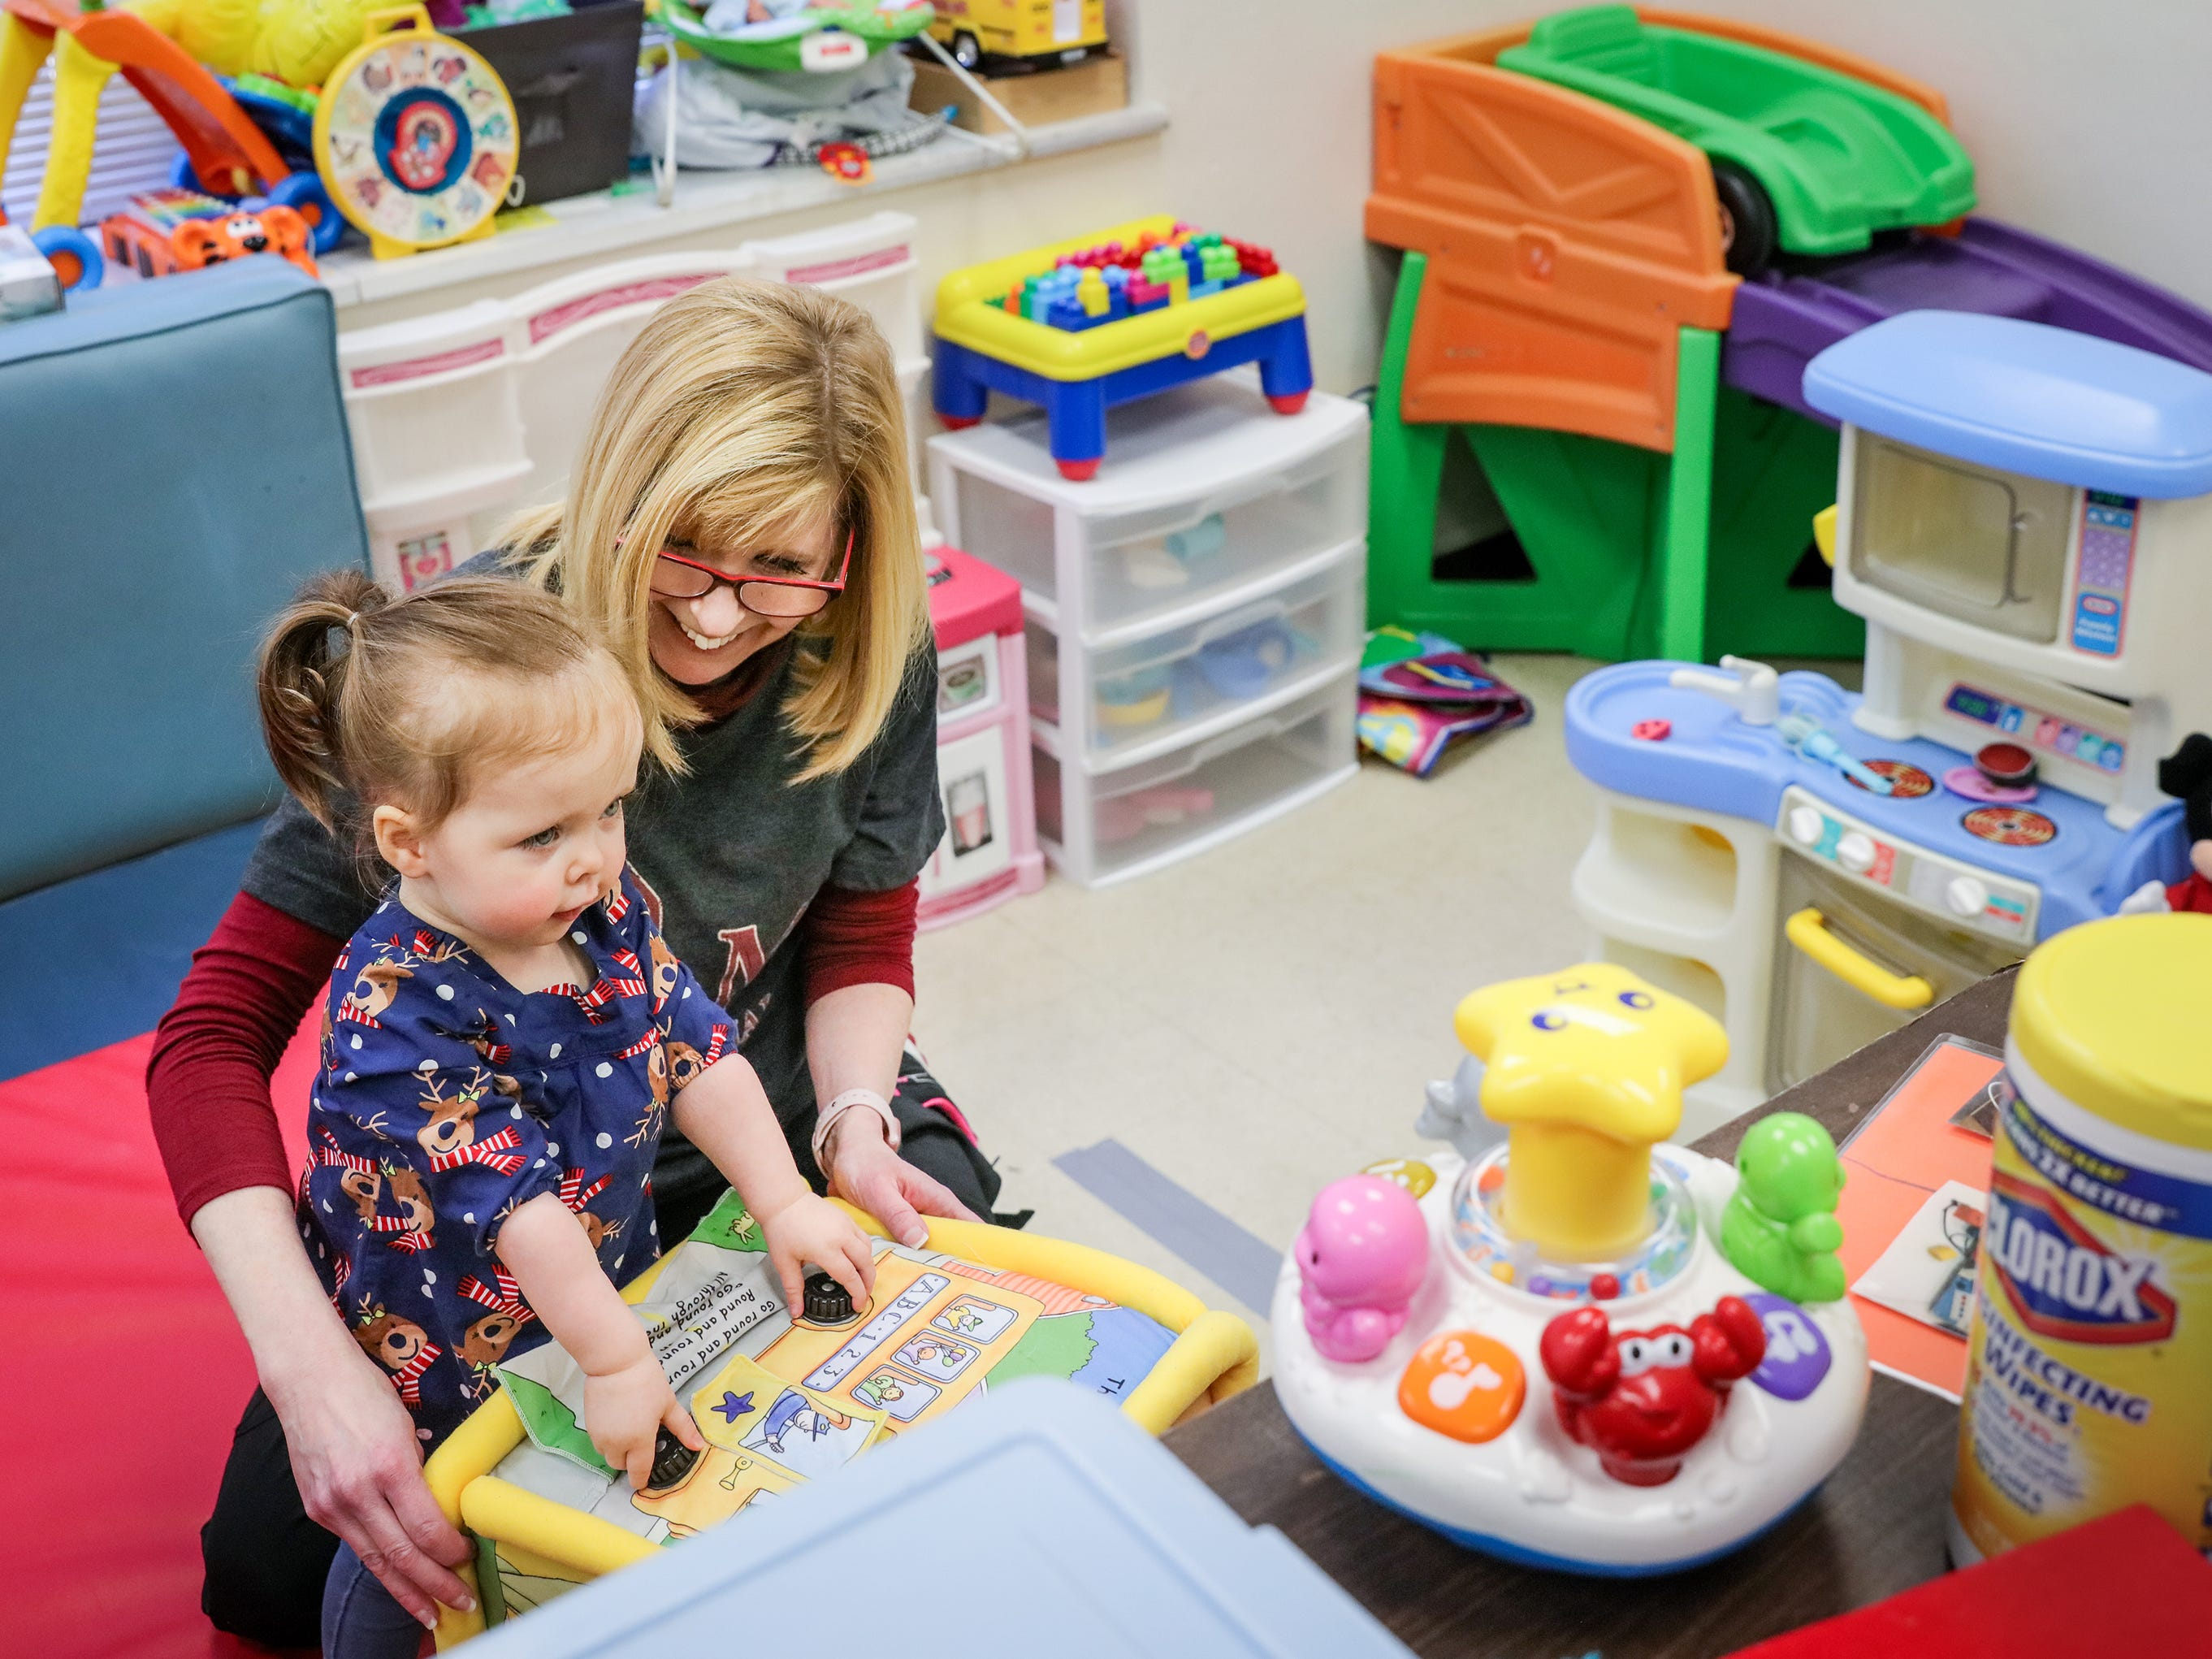 Mother: Our daughter is receiving the best at ULM Occupational Therapy